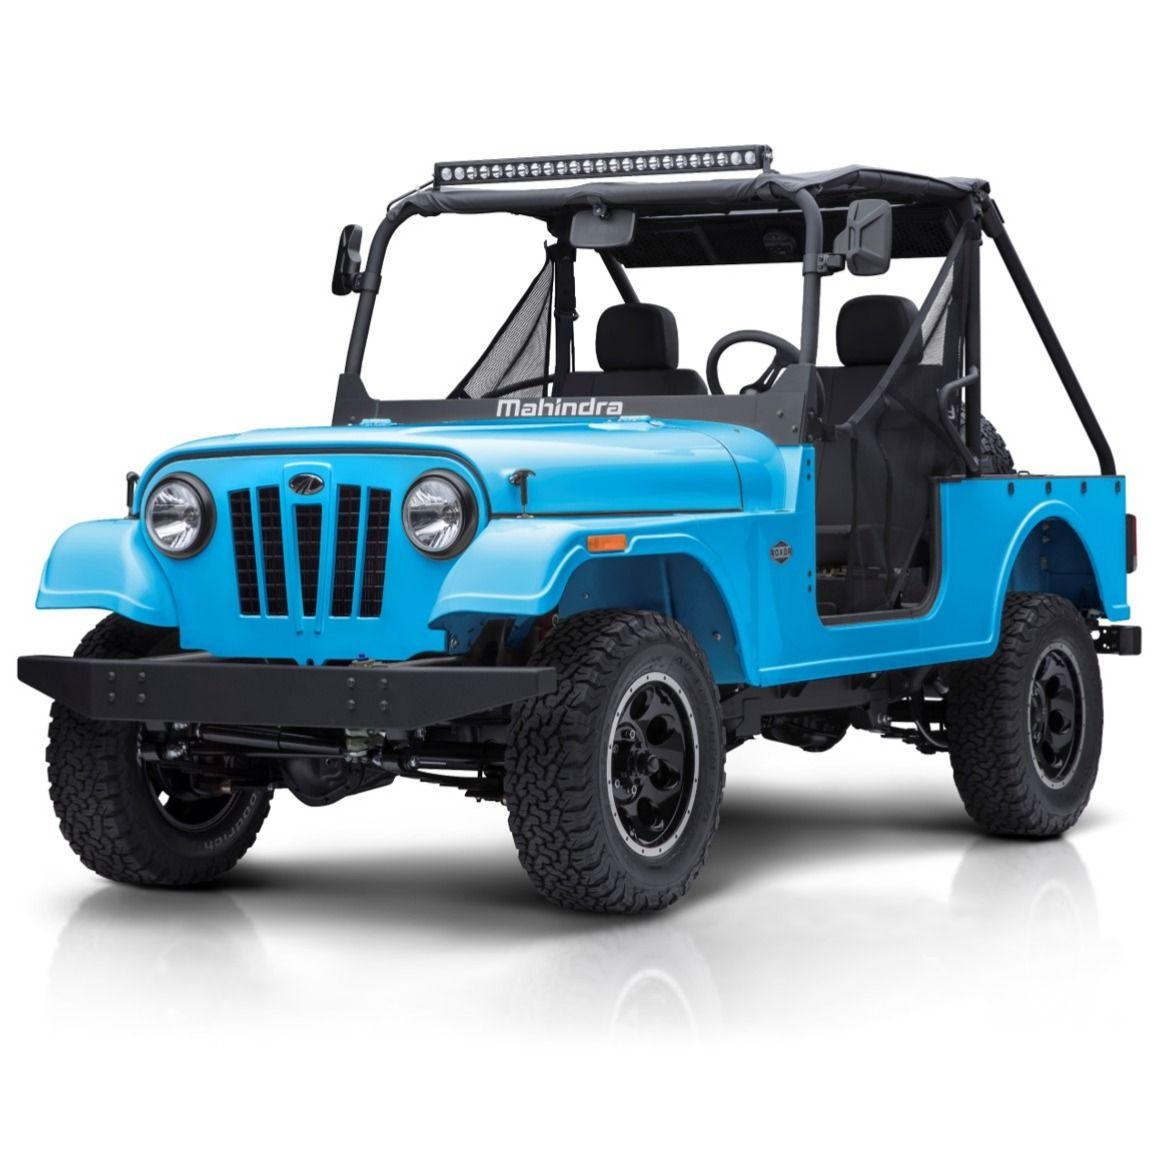 Roxor In Blue Offroad Vehicles Cars For Sale Monster Trucks